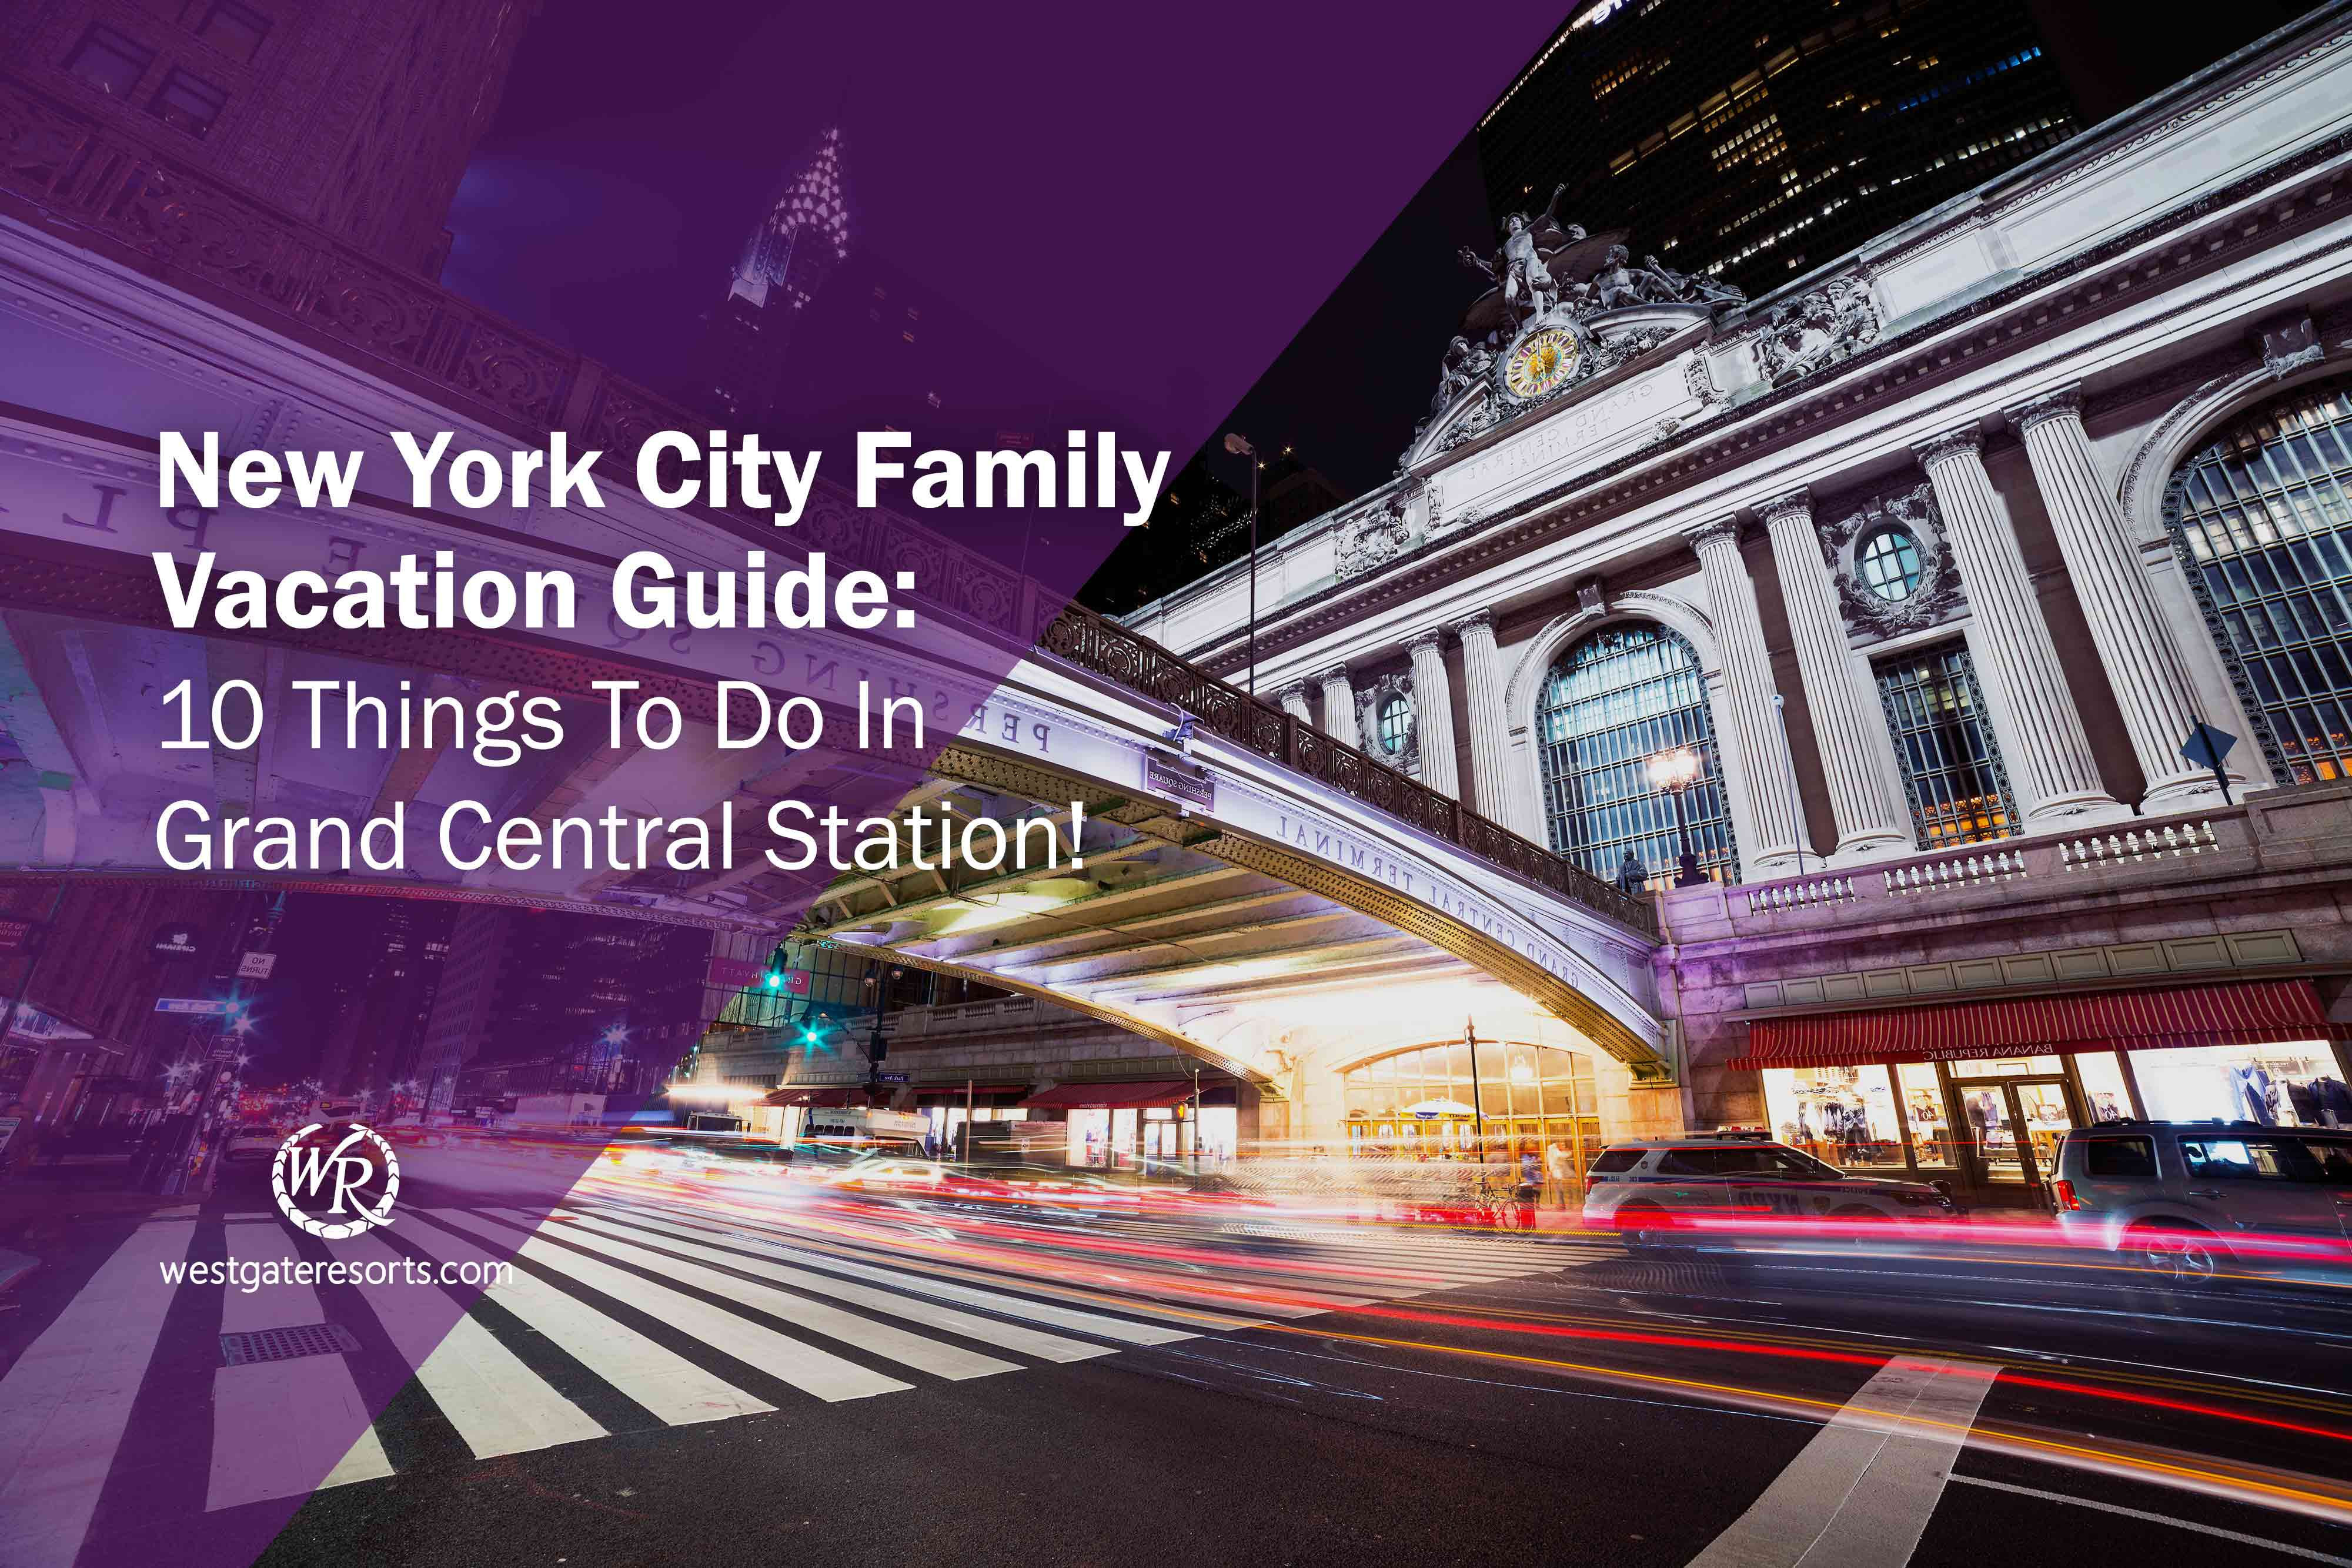 New York City Family Vacation Guide: 10 Things To Do In Grand Central Station!